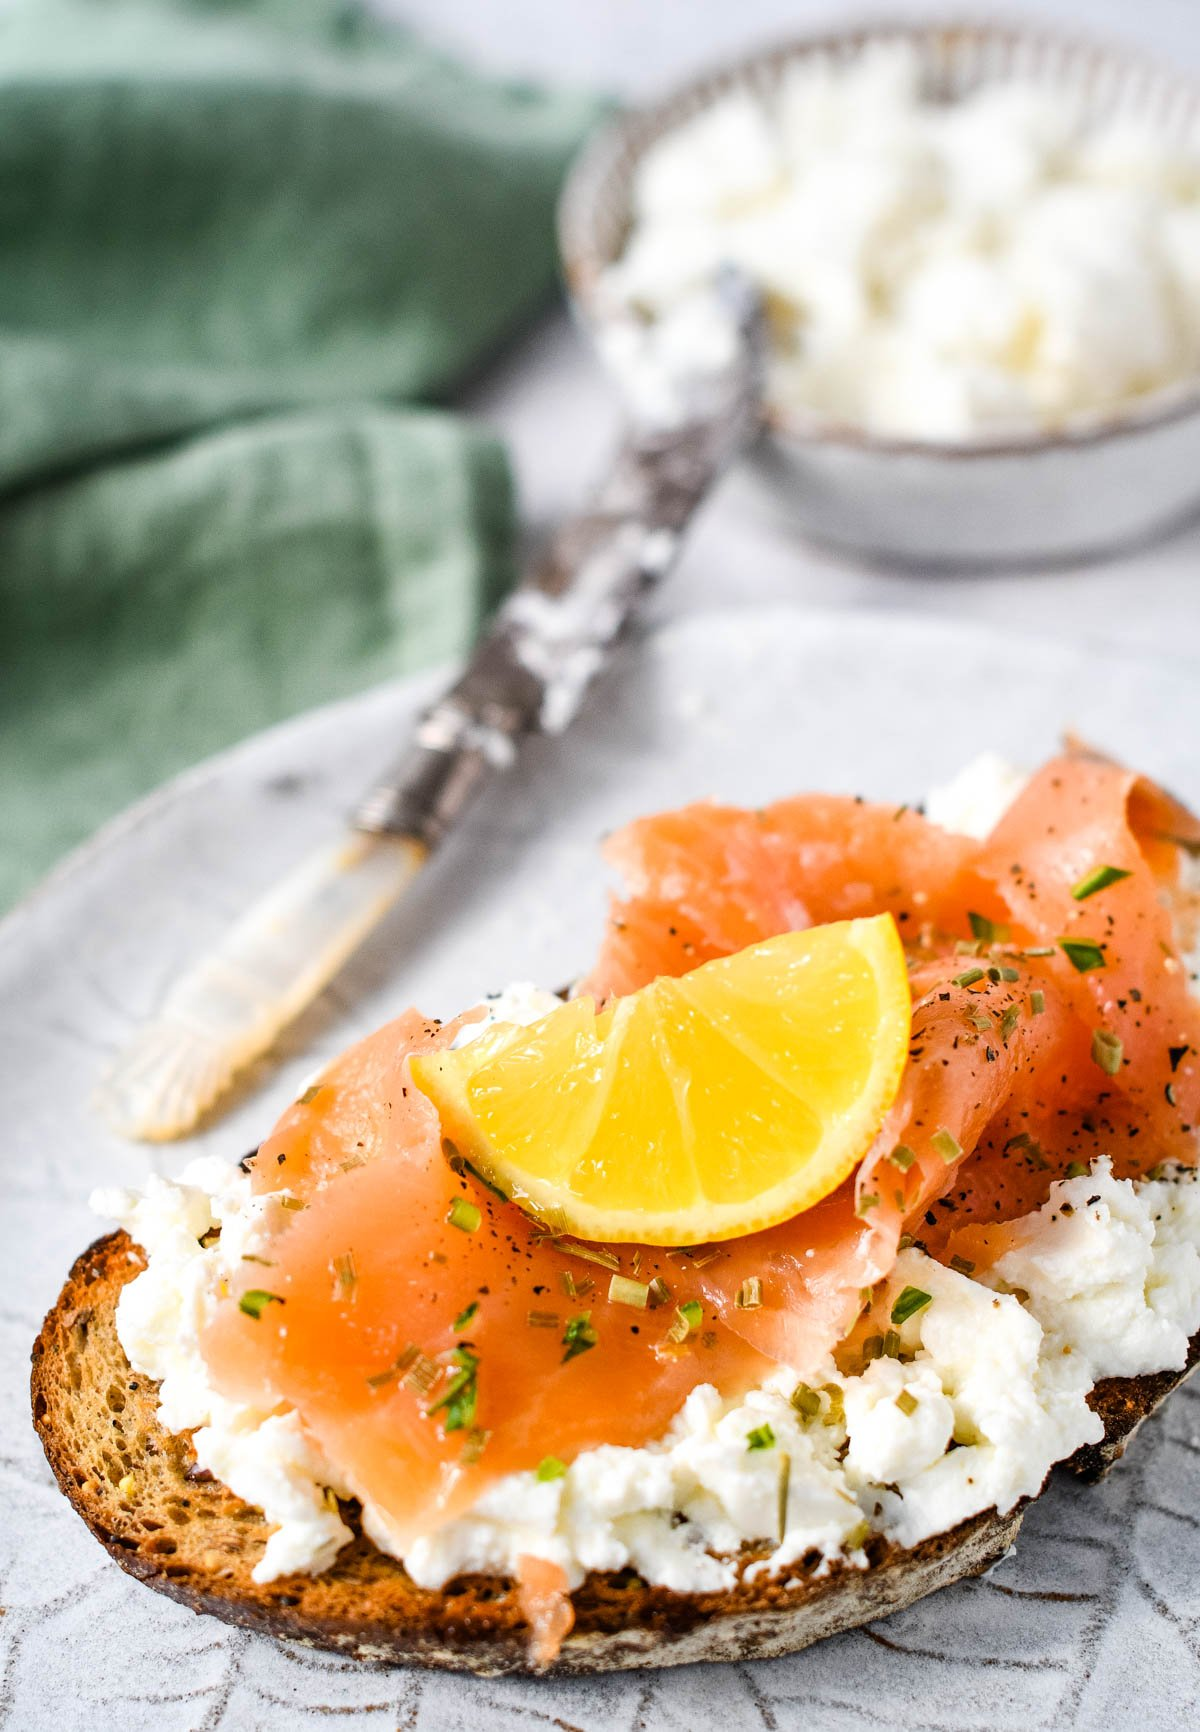 homemade ricotta cheese on toast with smoked salmon